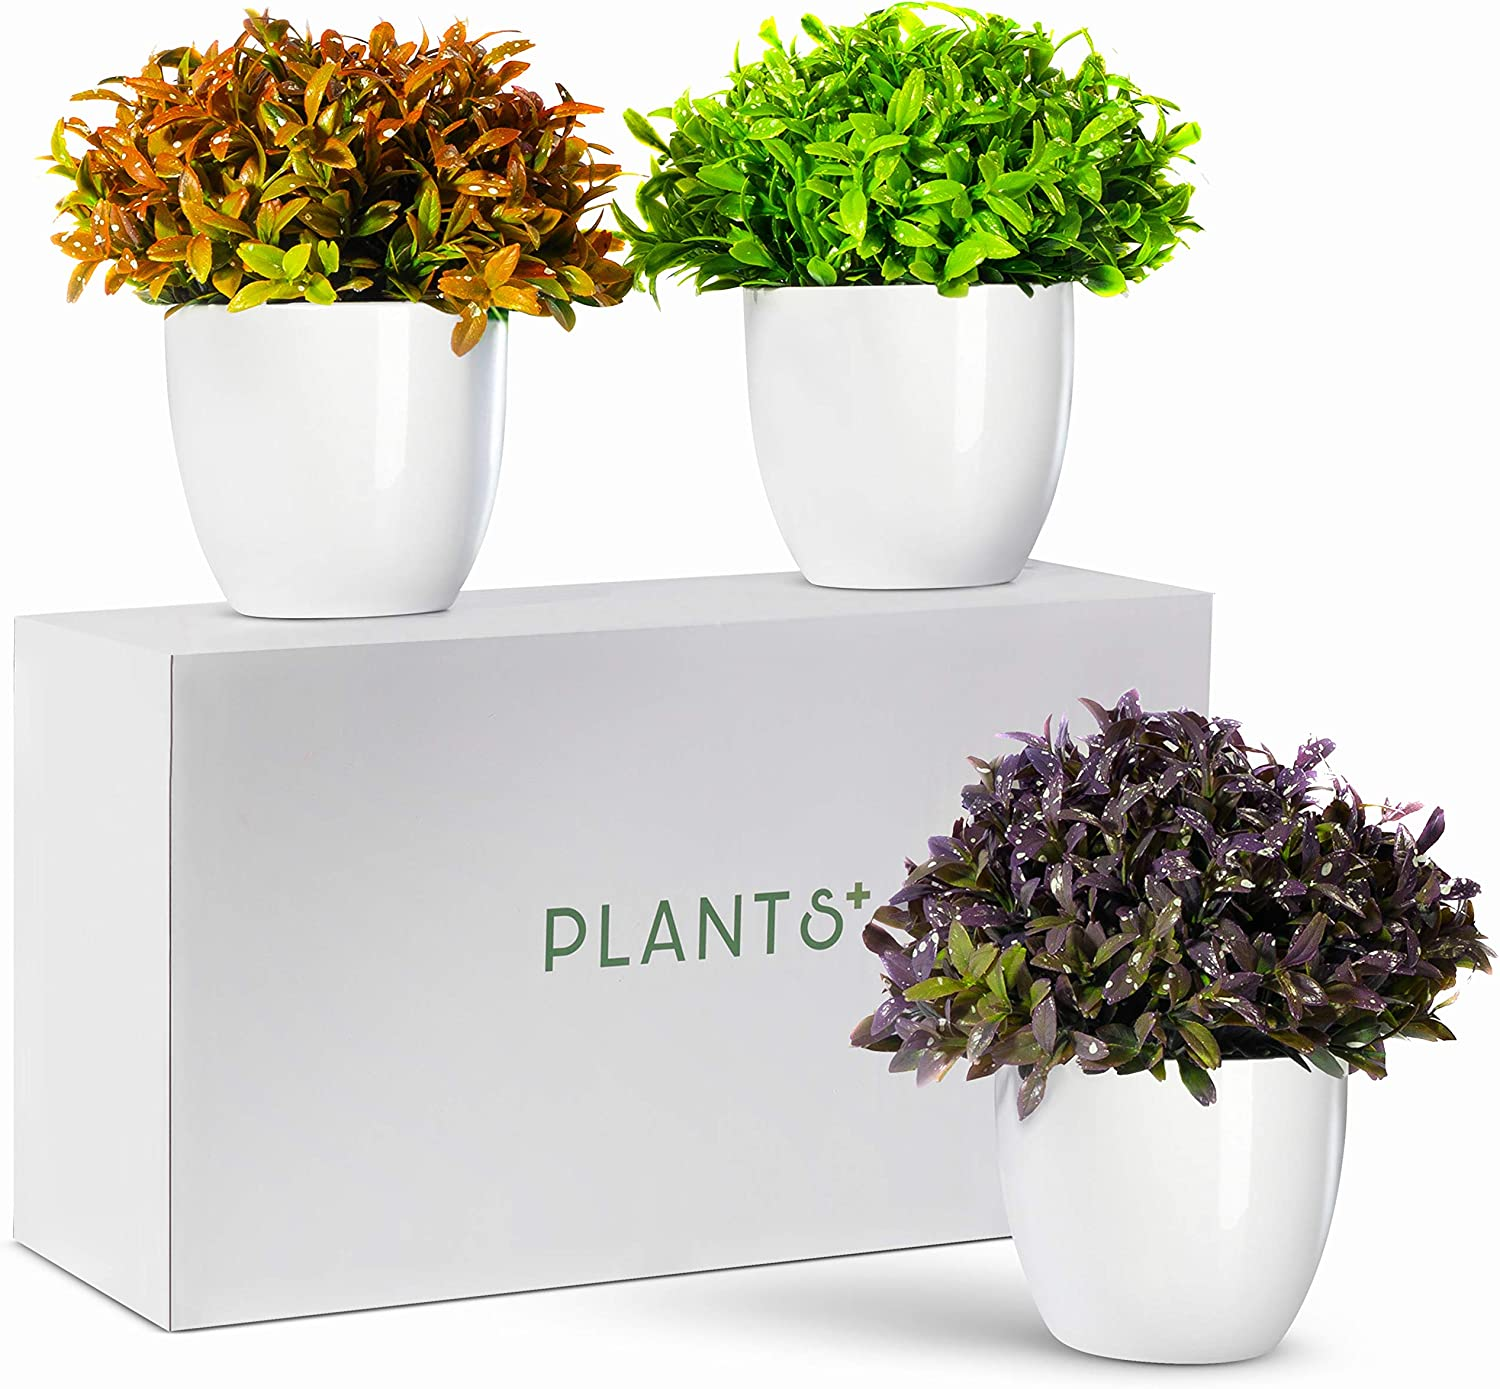 Plants+ Artificial Fake Faux Indoor House Desk Office Plant for Decoration - Plastic Lifelike Flower with White Pot, Outdoor Decor Topiary Greenery, Set of 3, Spring Bloom -